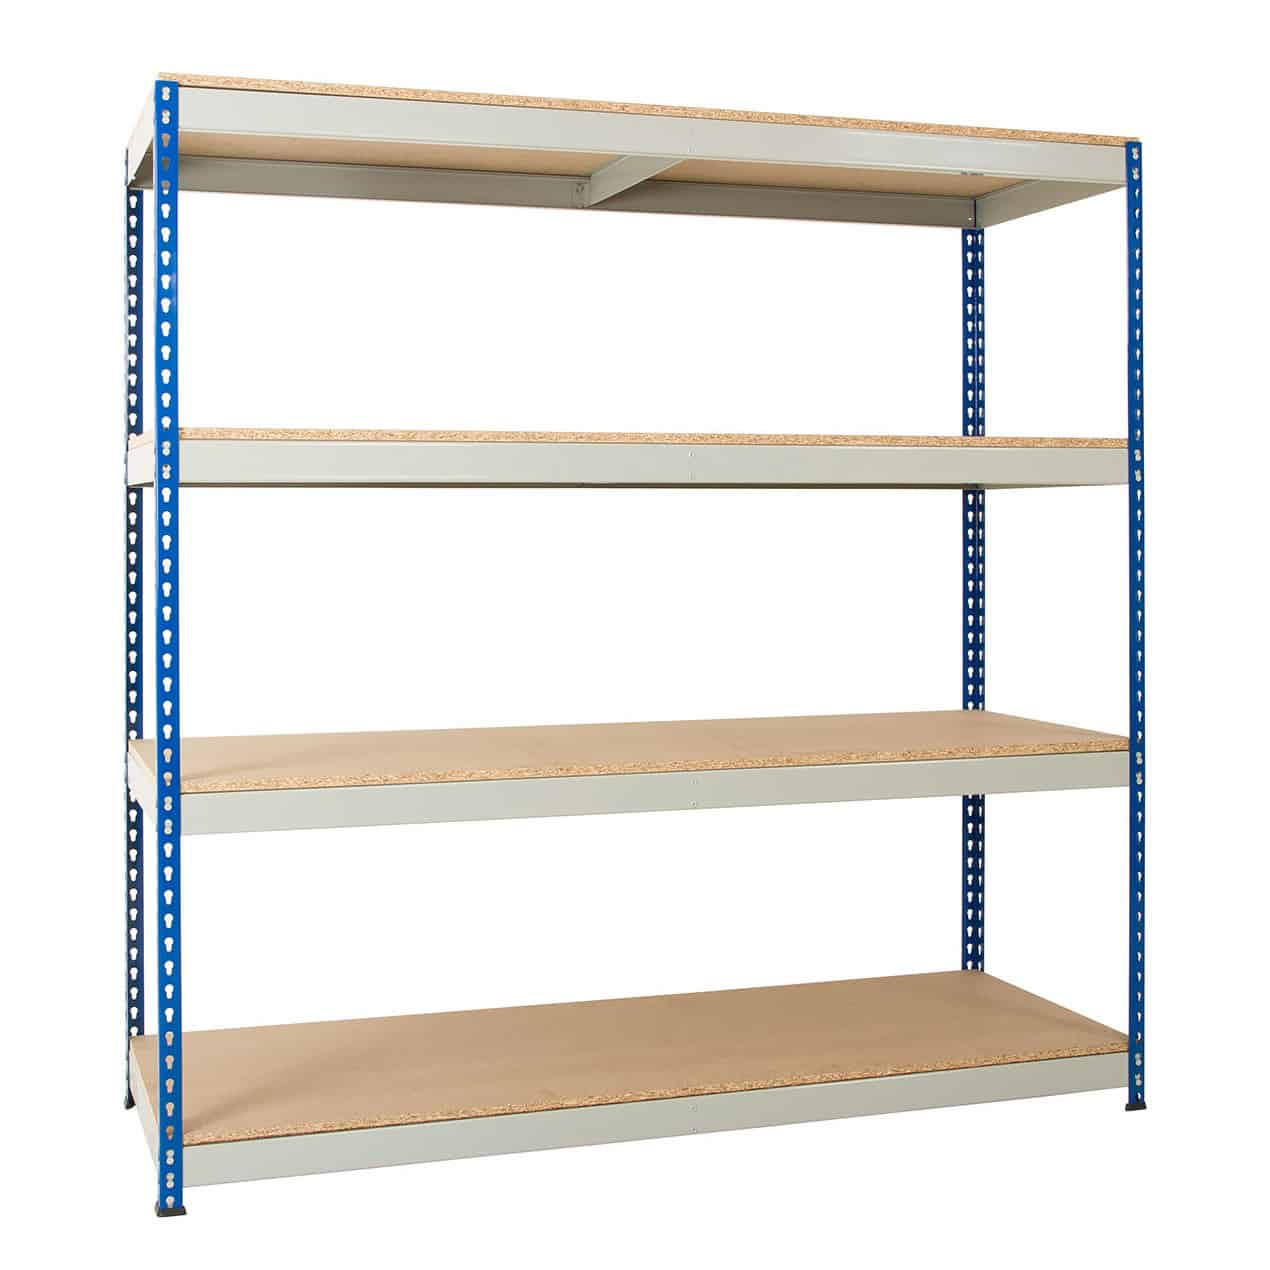 Medium Duty Steel Rivet Racking System